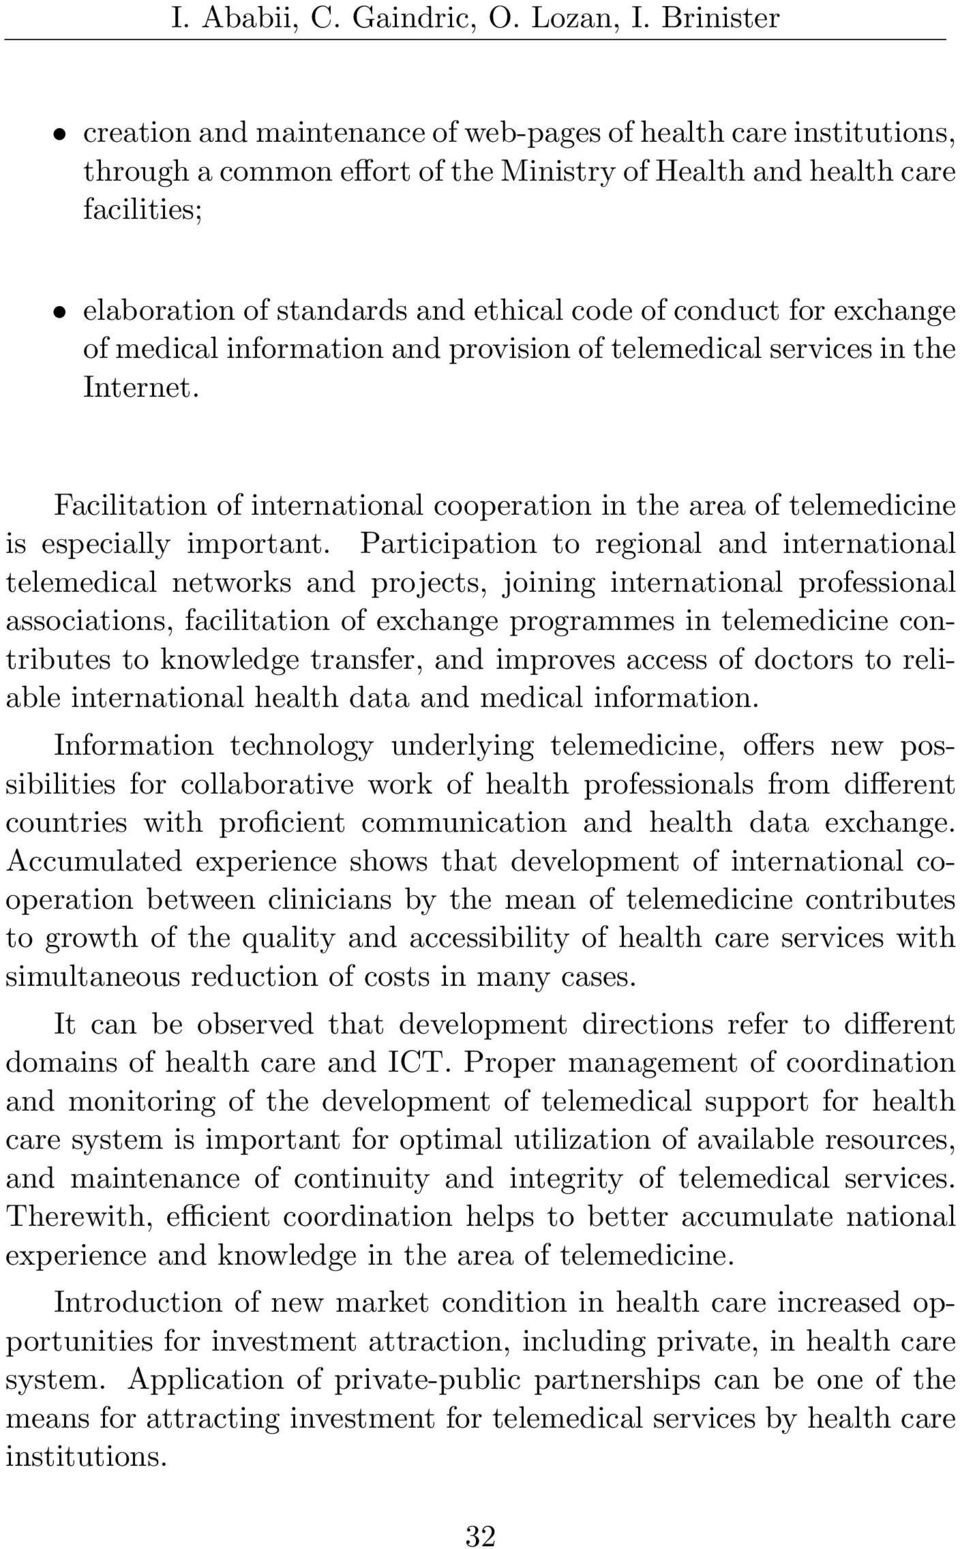 conduct for exchange of medical information and provision of telemedical services in the Internet. Facilitation of international cooperation in the area of telemedicine is especially important.